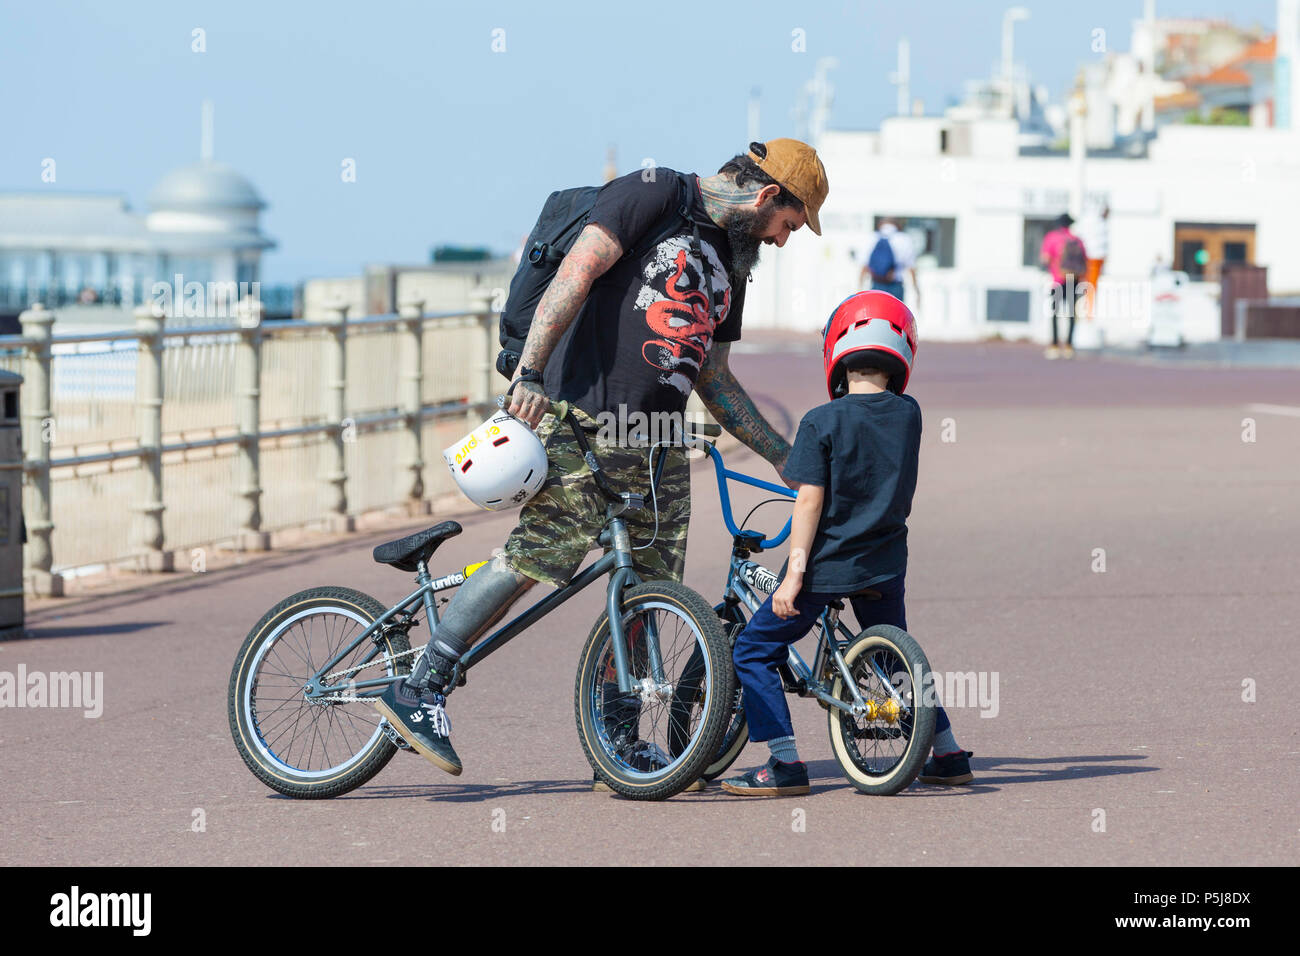 Hastings, East Sussex, UK. 27th Jun, 2018. UK Weather: The Hot and sunny weather continues in Hastings, East Sussex with highs of 30°C in some parts of the country. The heatwave that is hitting Britain is expected to last well into next week. Two bmx riders adjust their bikes. Photo Credit: PAL Images / Alamy Live News - Stock Image